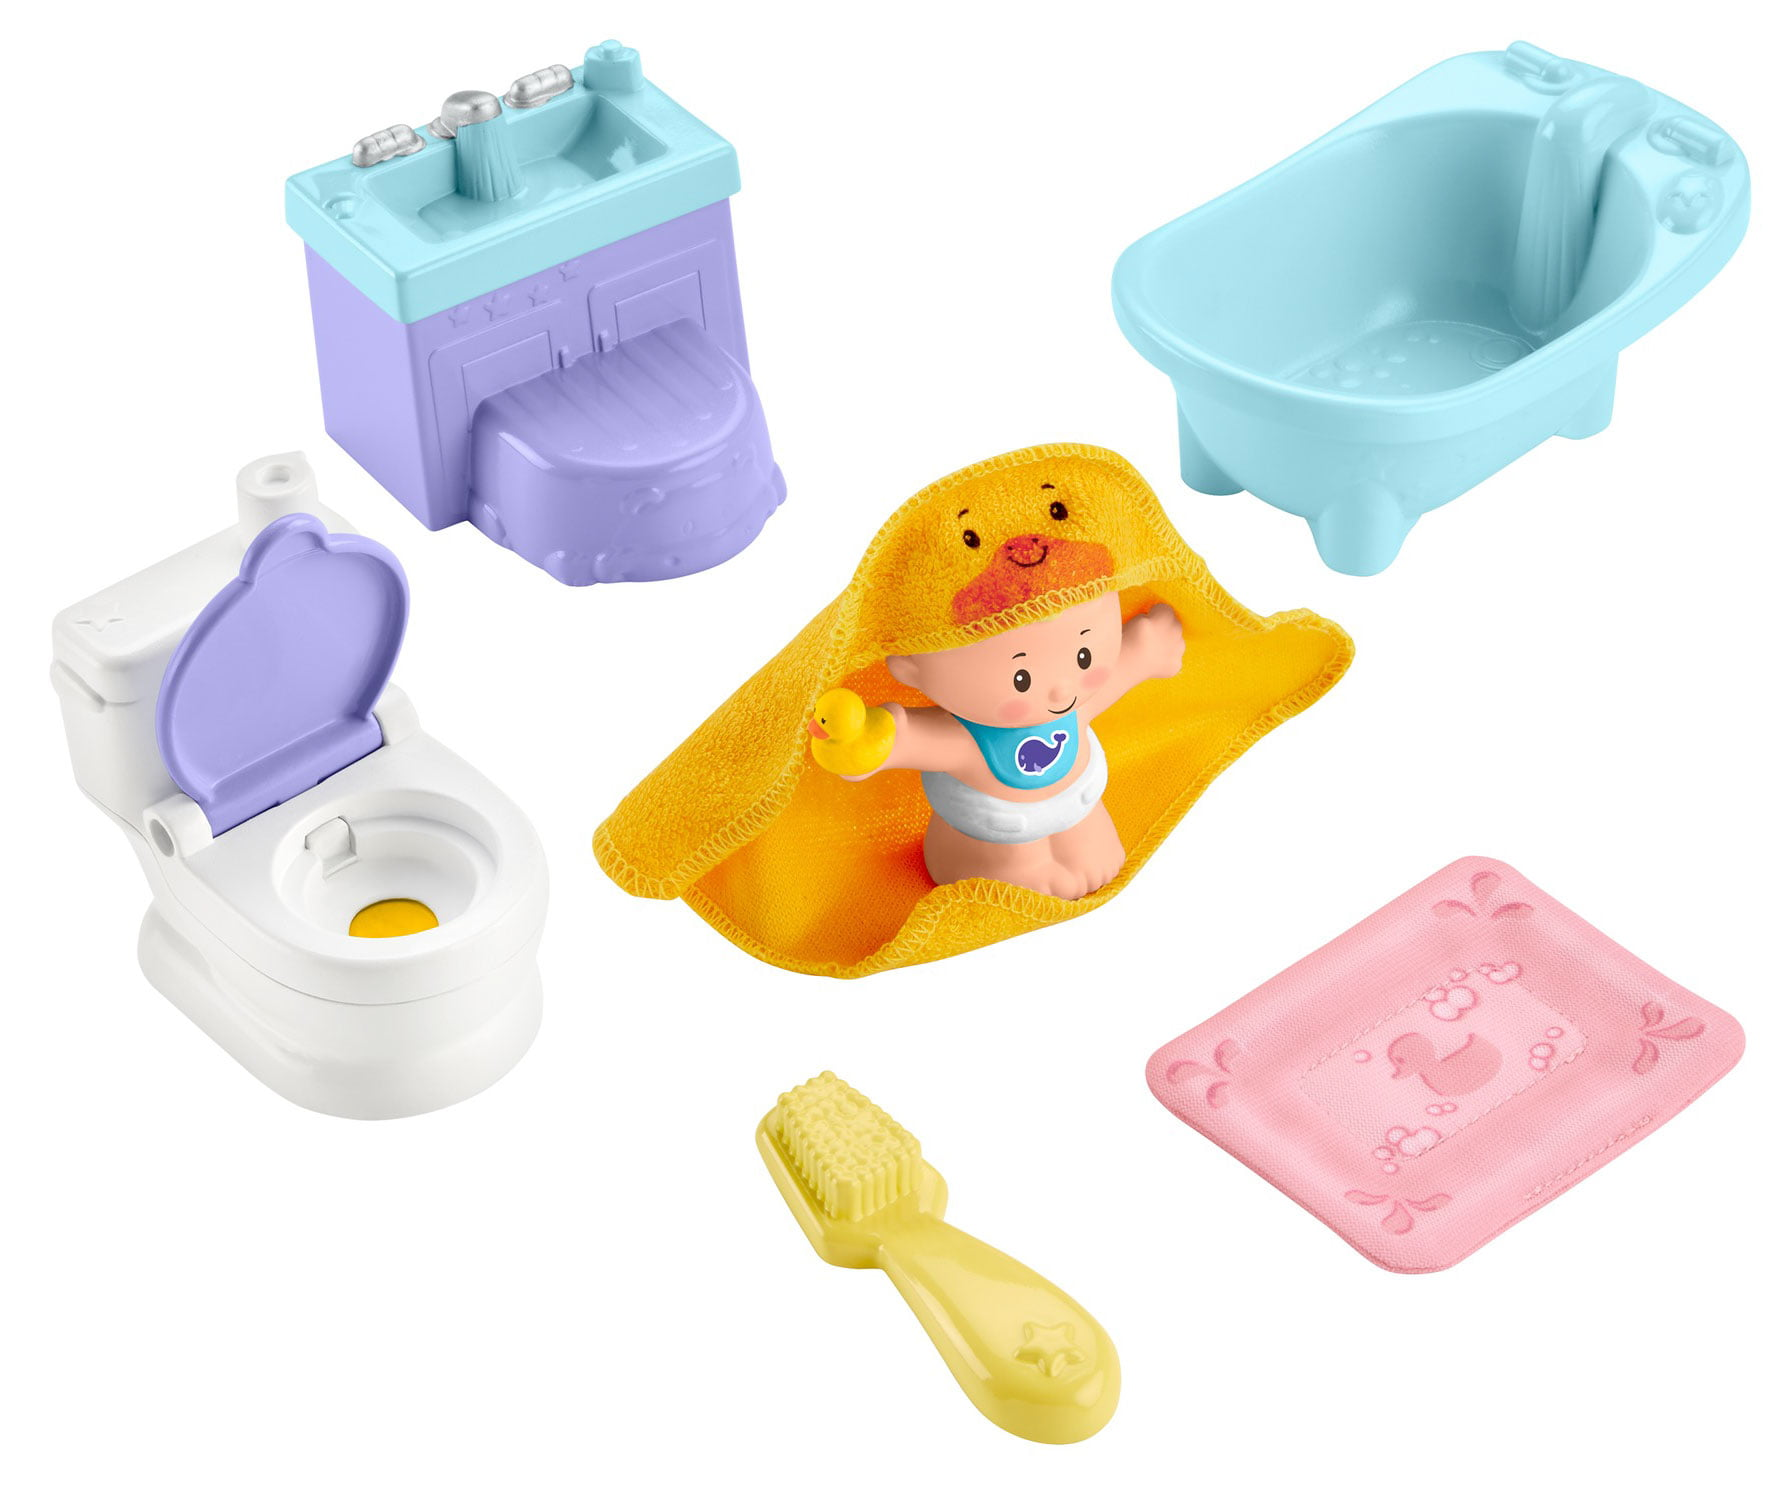 Fisher-Price Little People Wash & Go Play Set For Toddlers, 7-Pieces